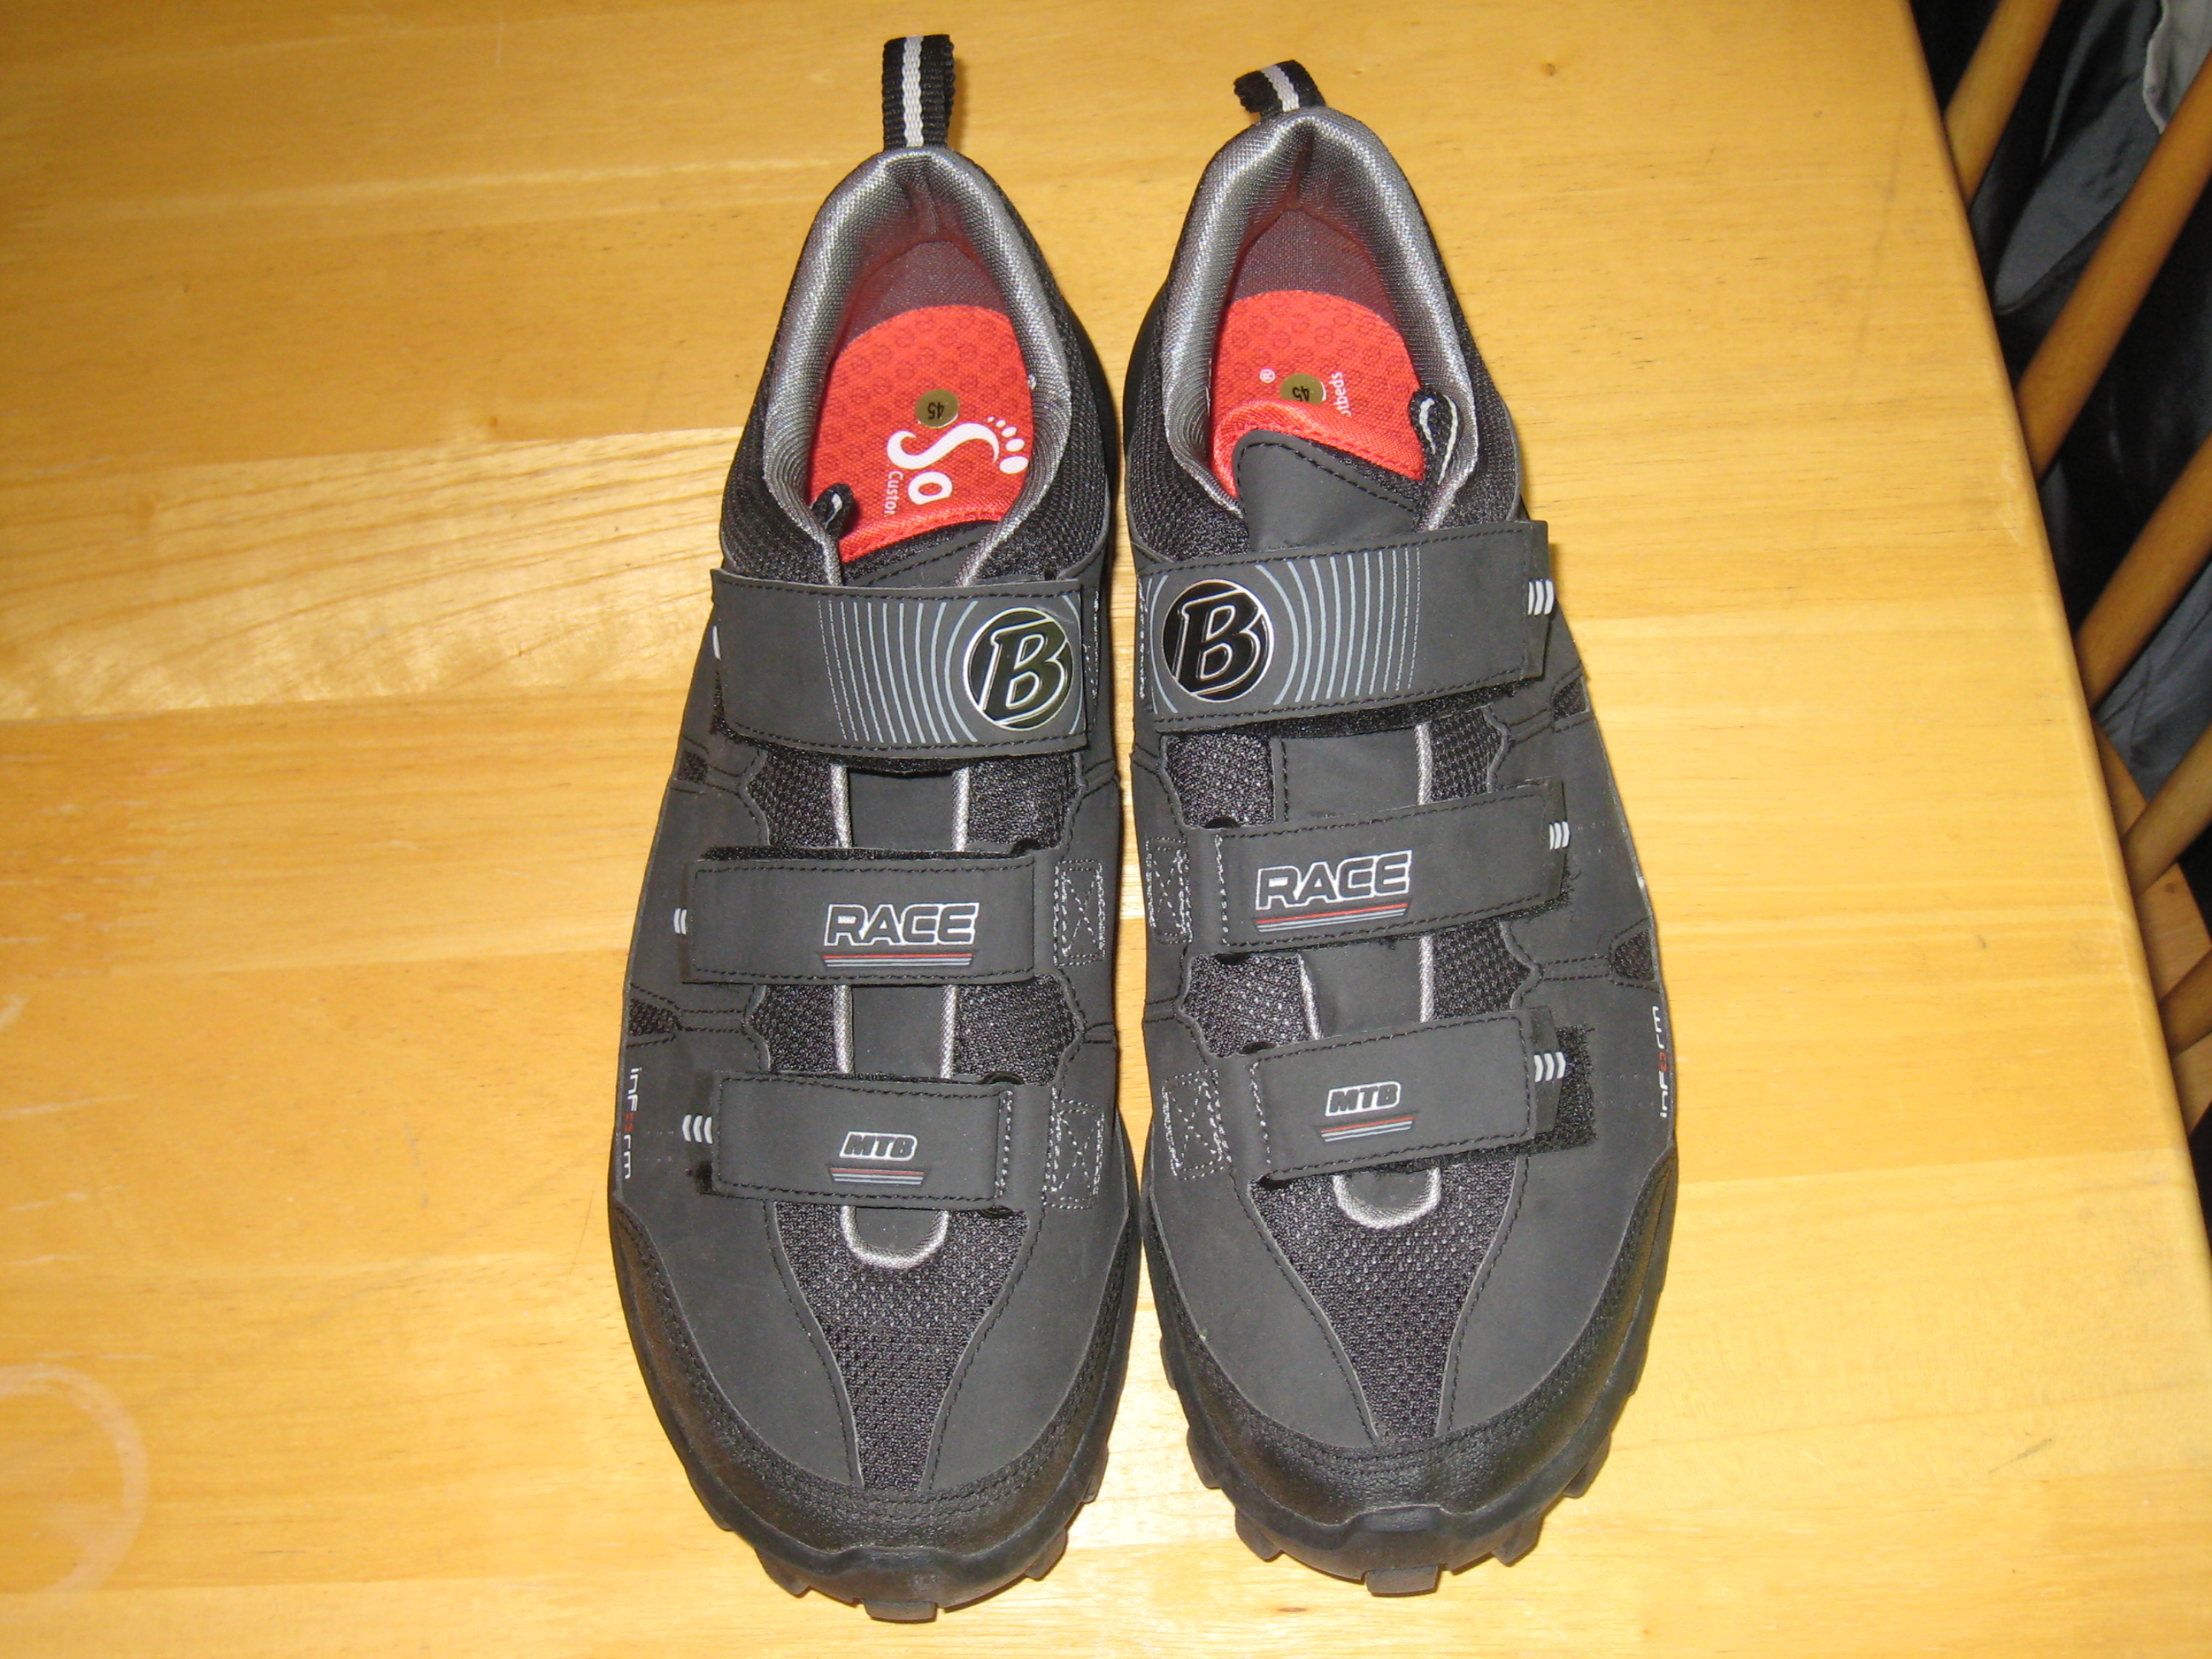 My new bike shoes